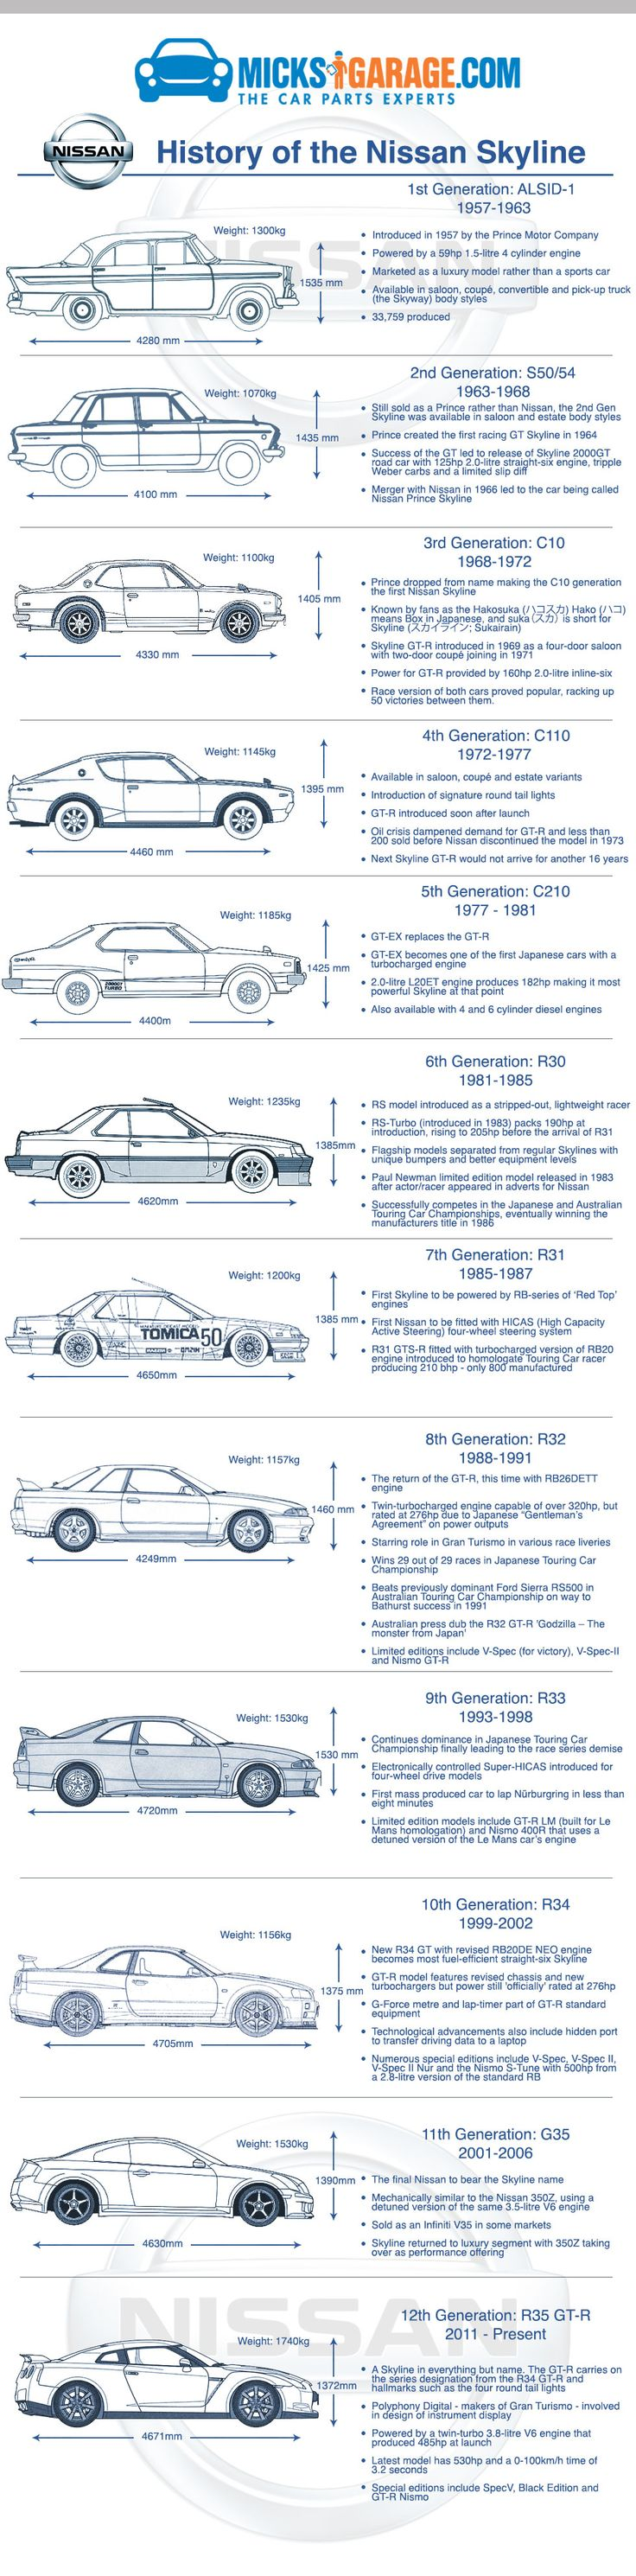 History of the Nissan Skyline. An infographic by the team at MicksGarage.com